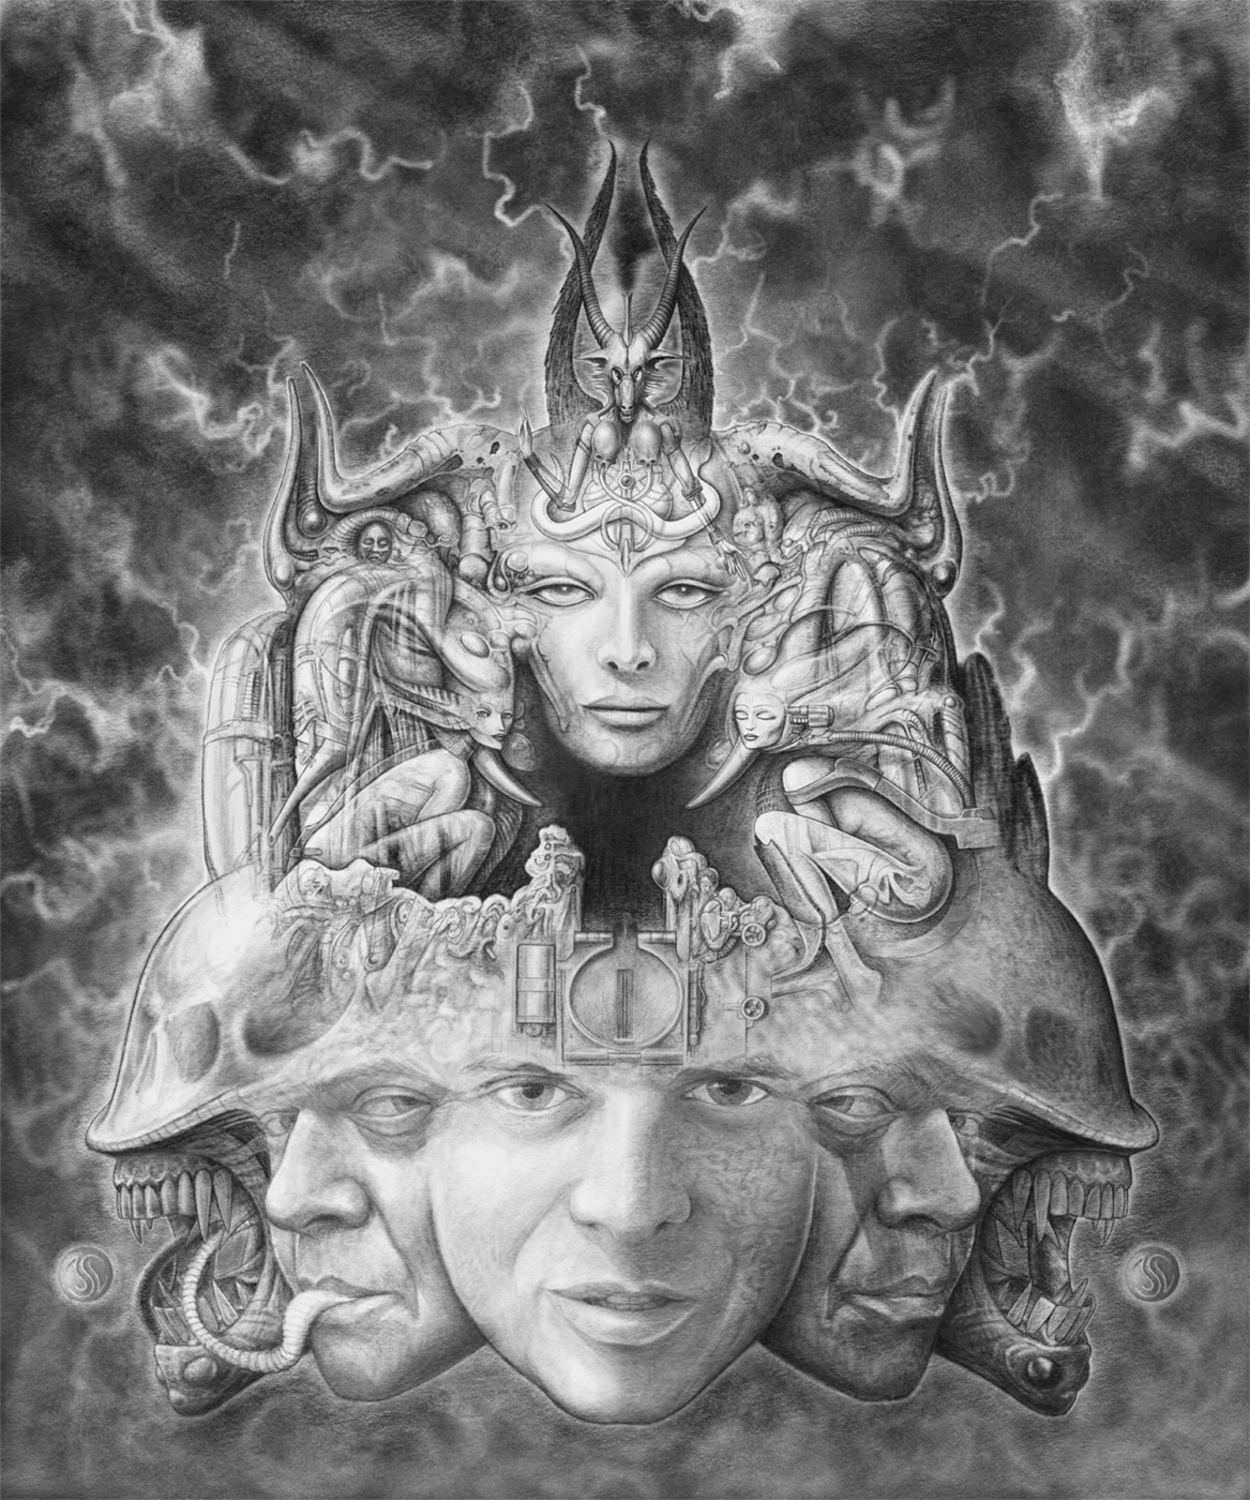 Portrait of H.R. Giger Artwork by Joshua Levin